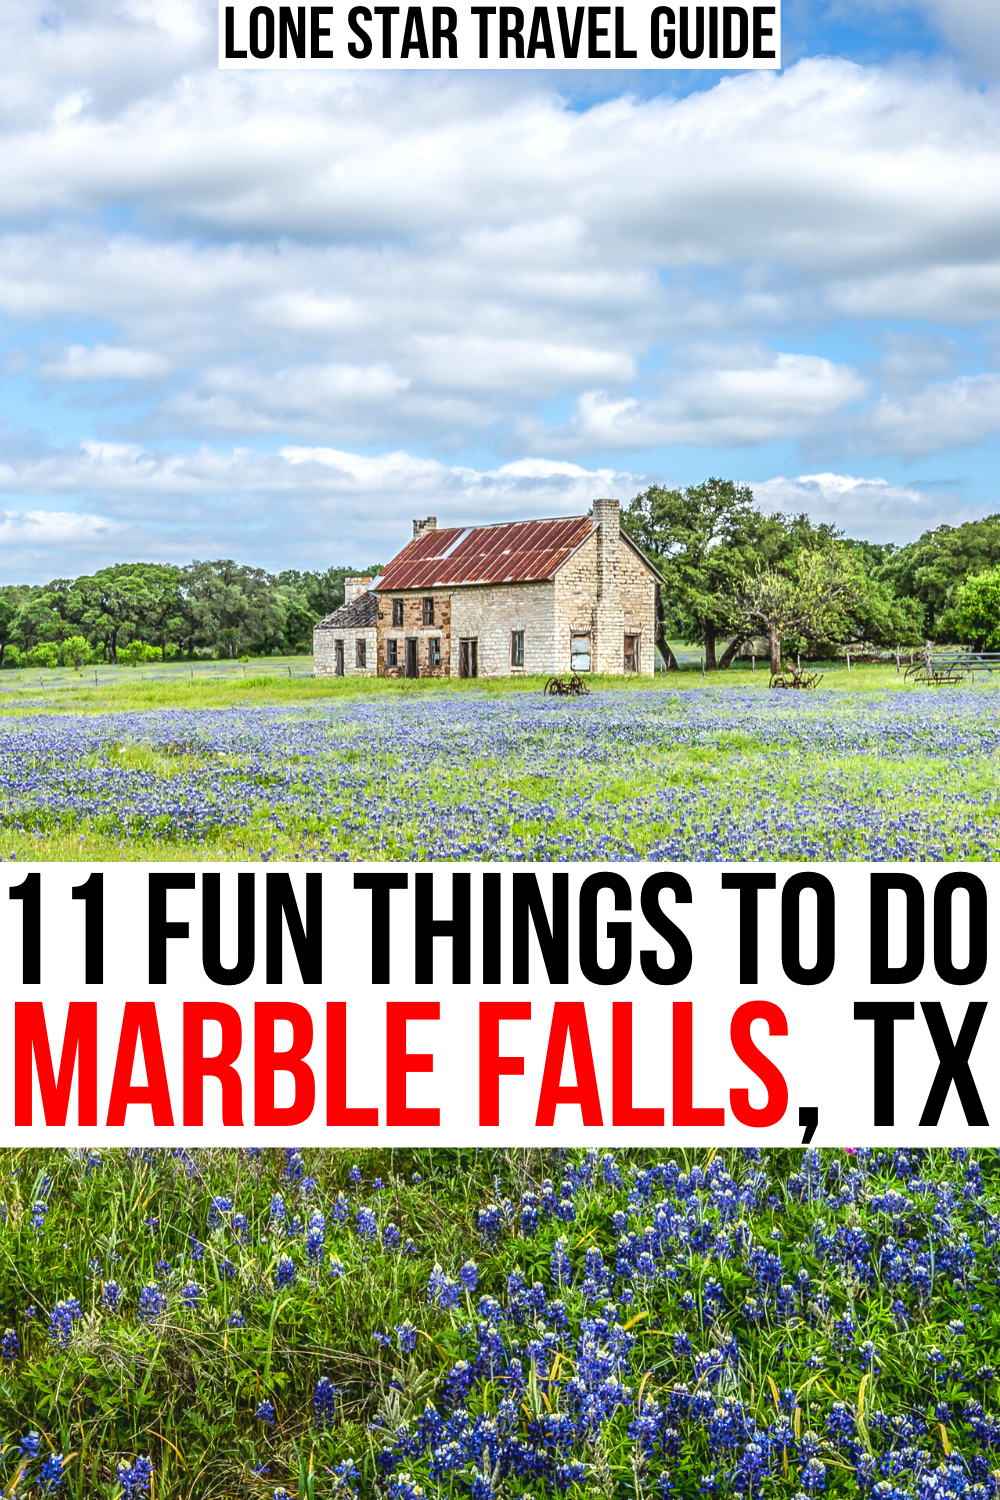 11 Fun Things to Do in Marble Falls, TX